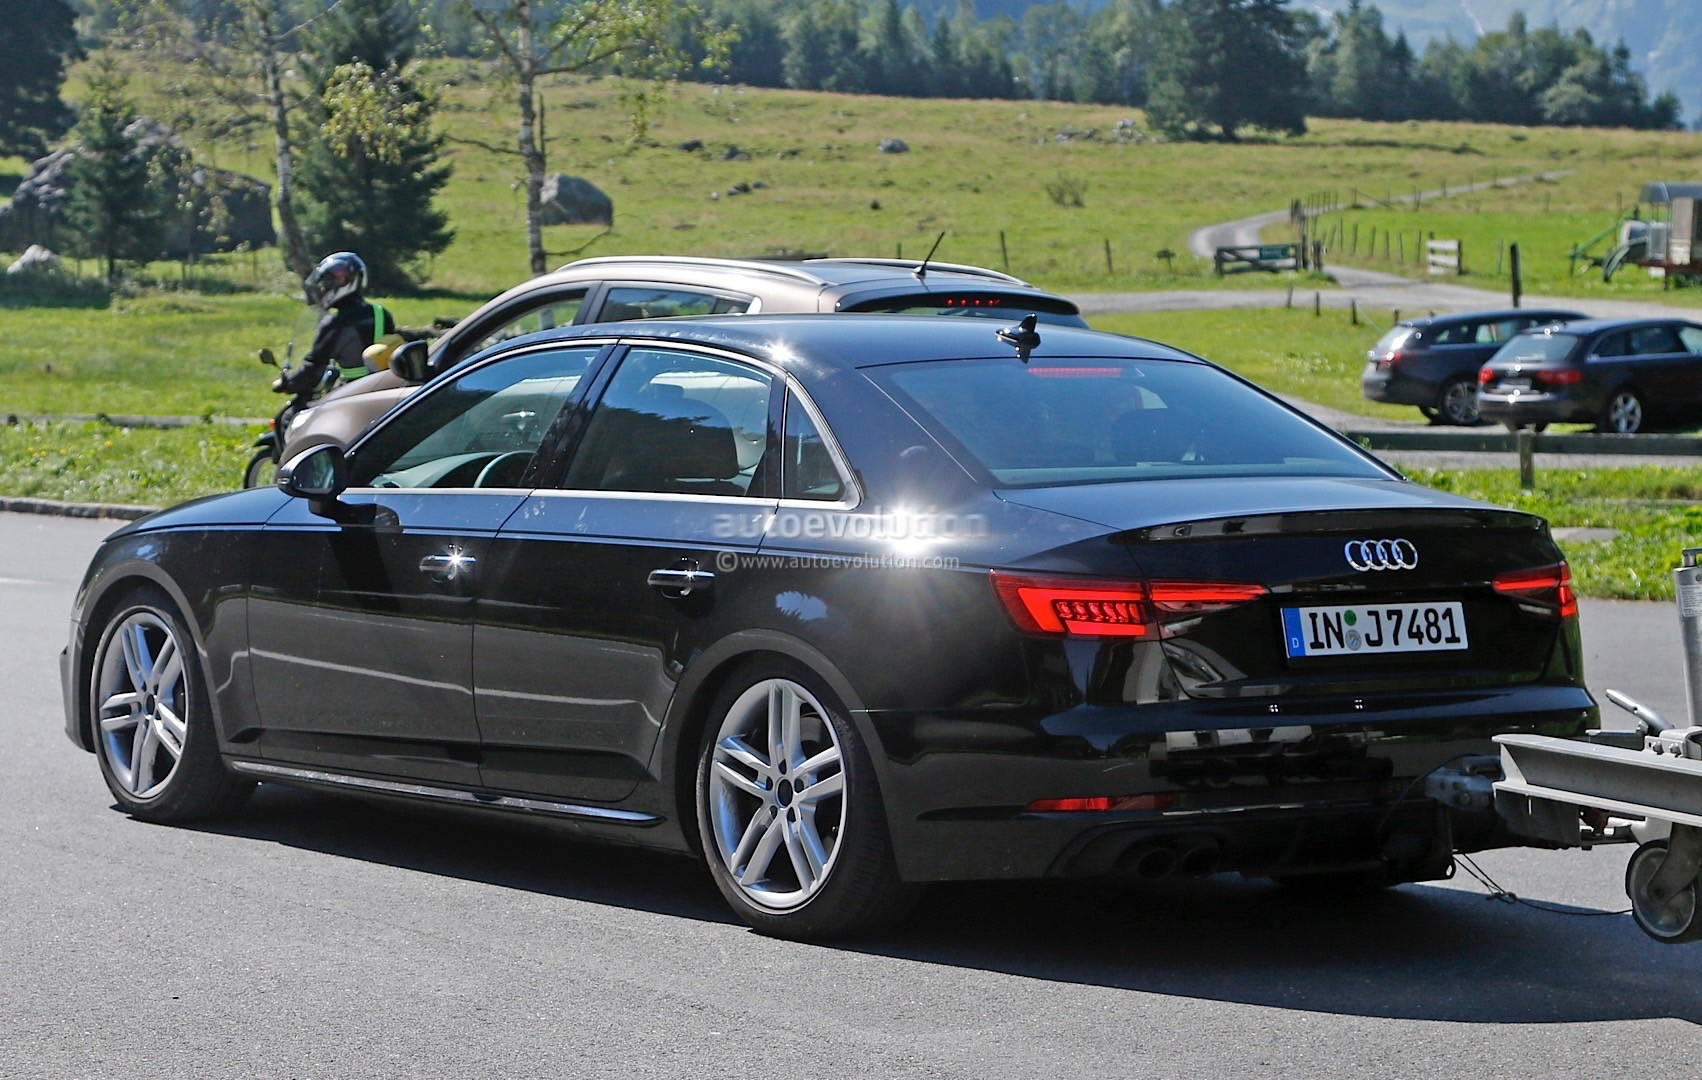 2017 Audi S4 Spotted Testing in the Alps, the Camouflage is Completely Gone - autoevolution